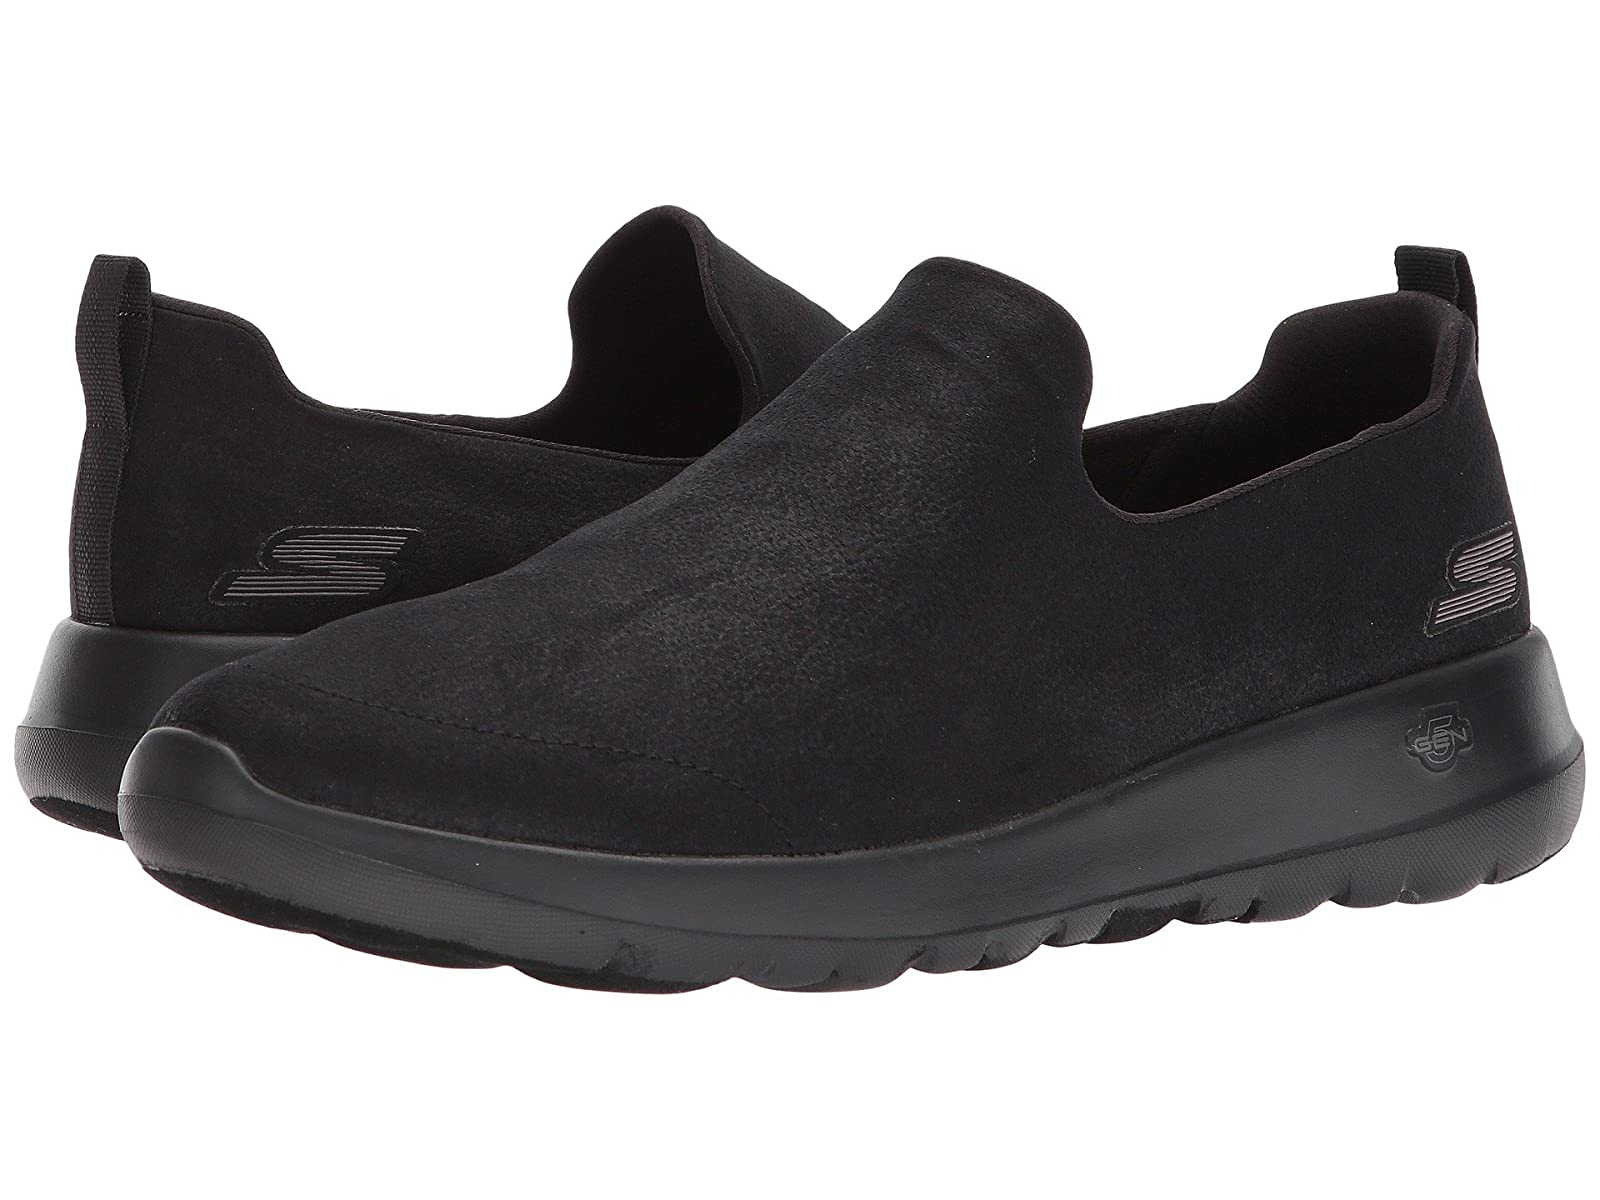 SKECHERS Performance GOwalk Max - EscalateAtmospheric grades have affordable shoes